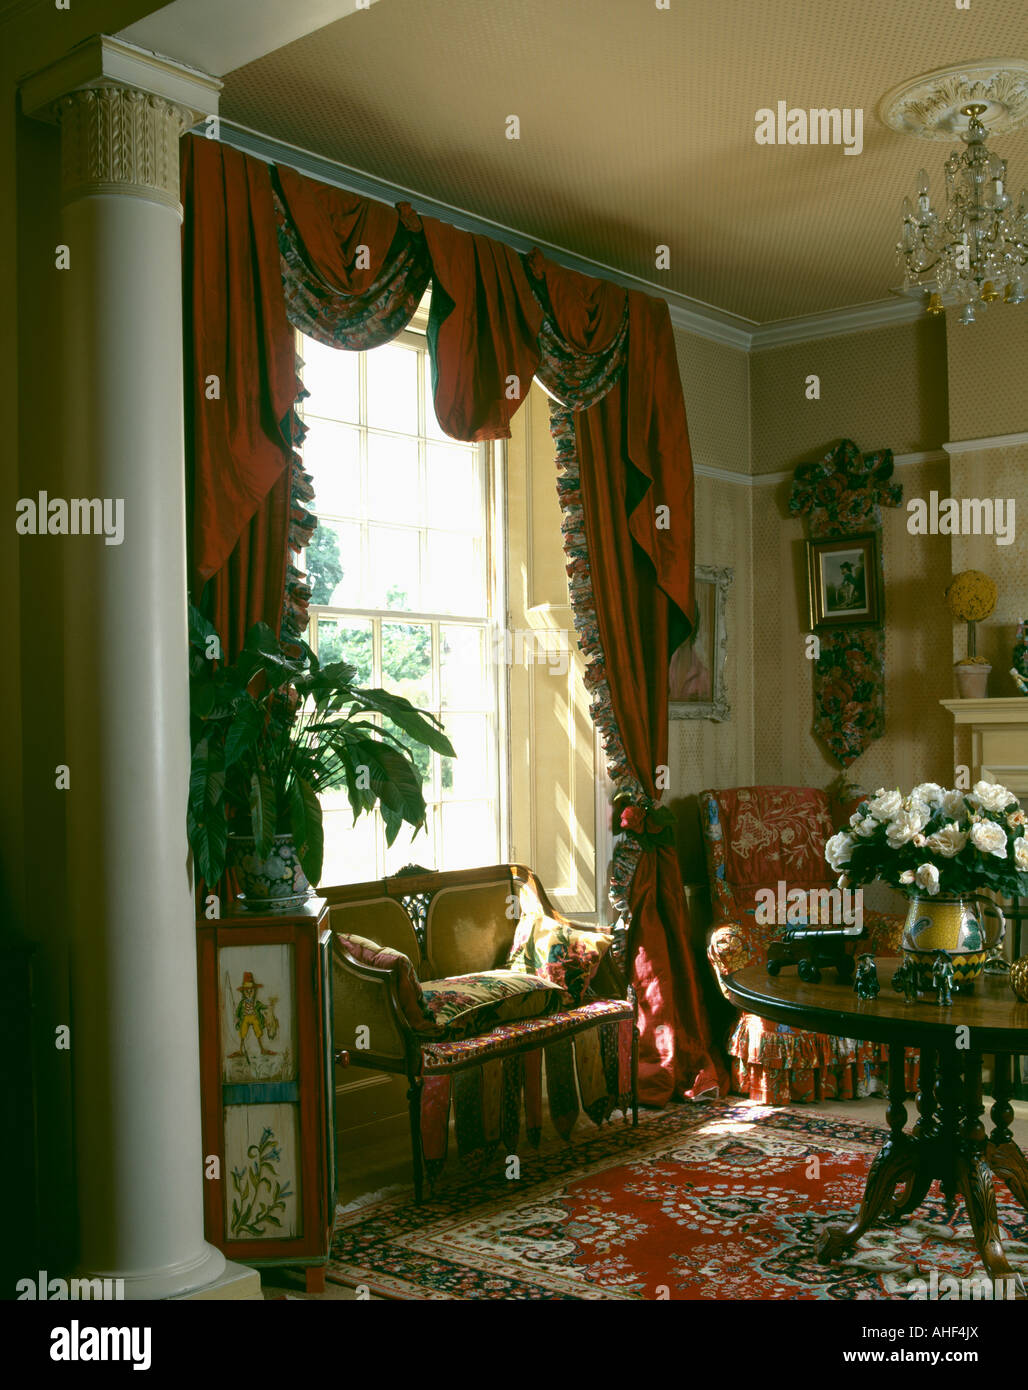 Swagged red curtains on window above small sofa in nineties ...